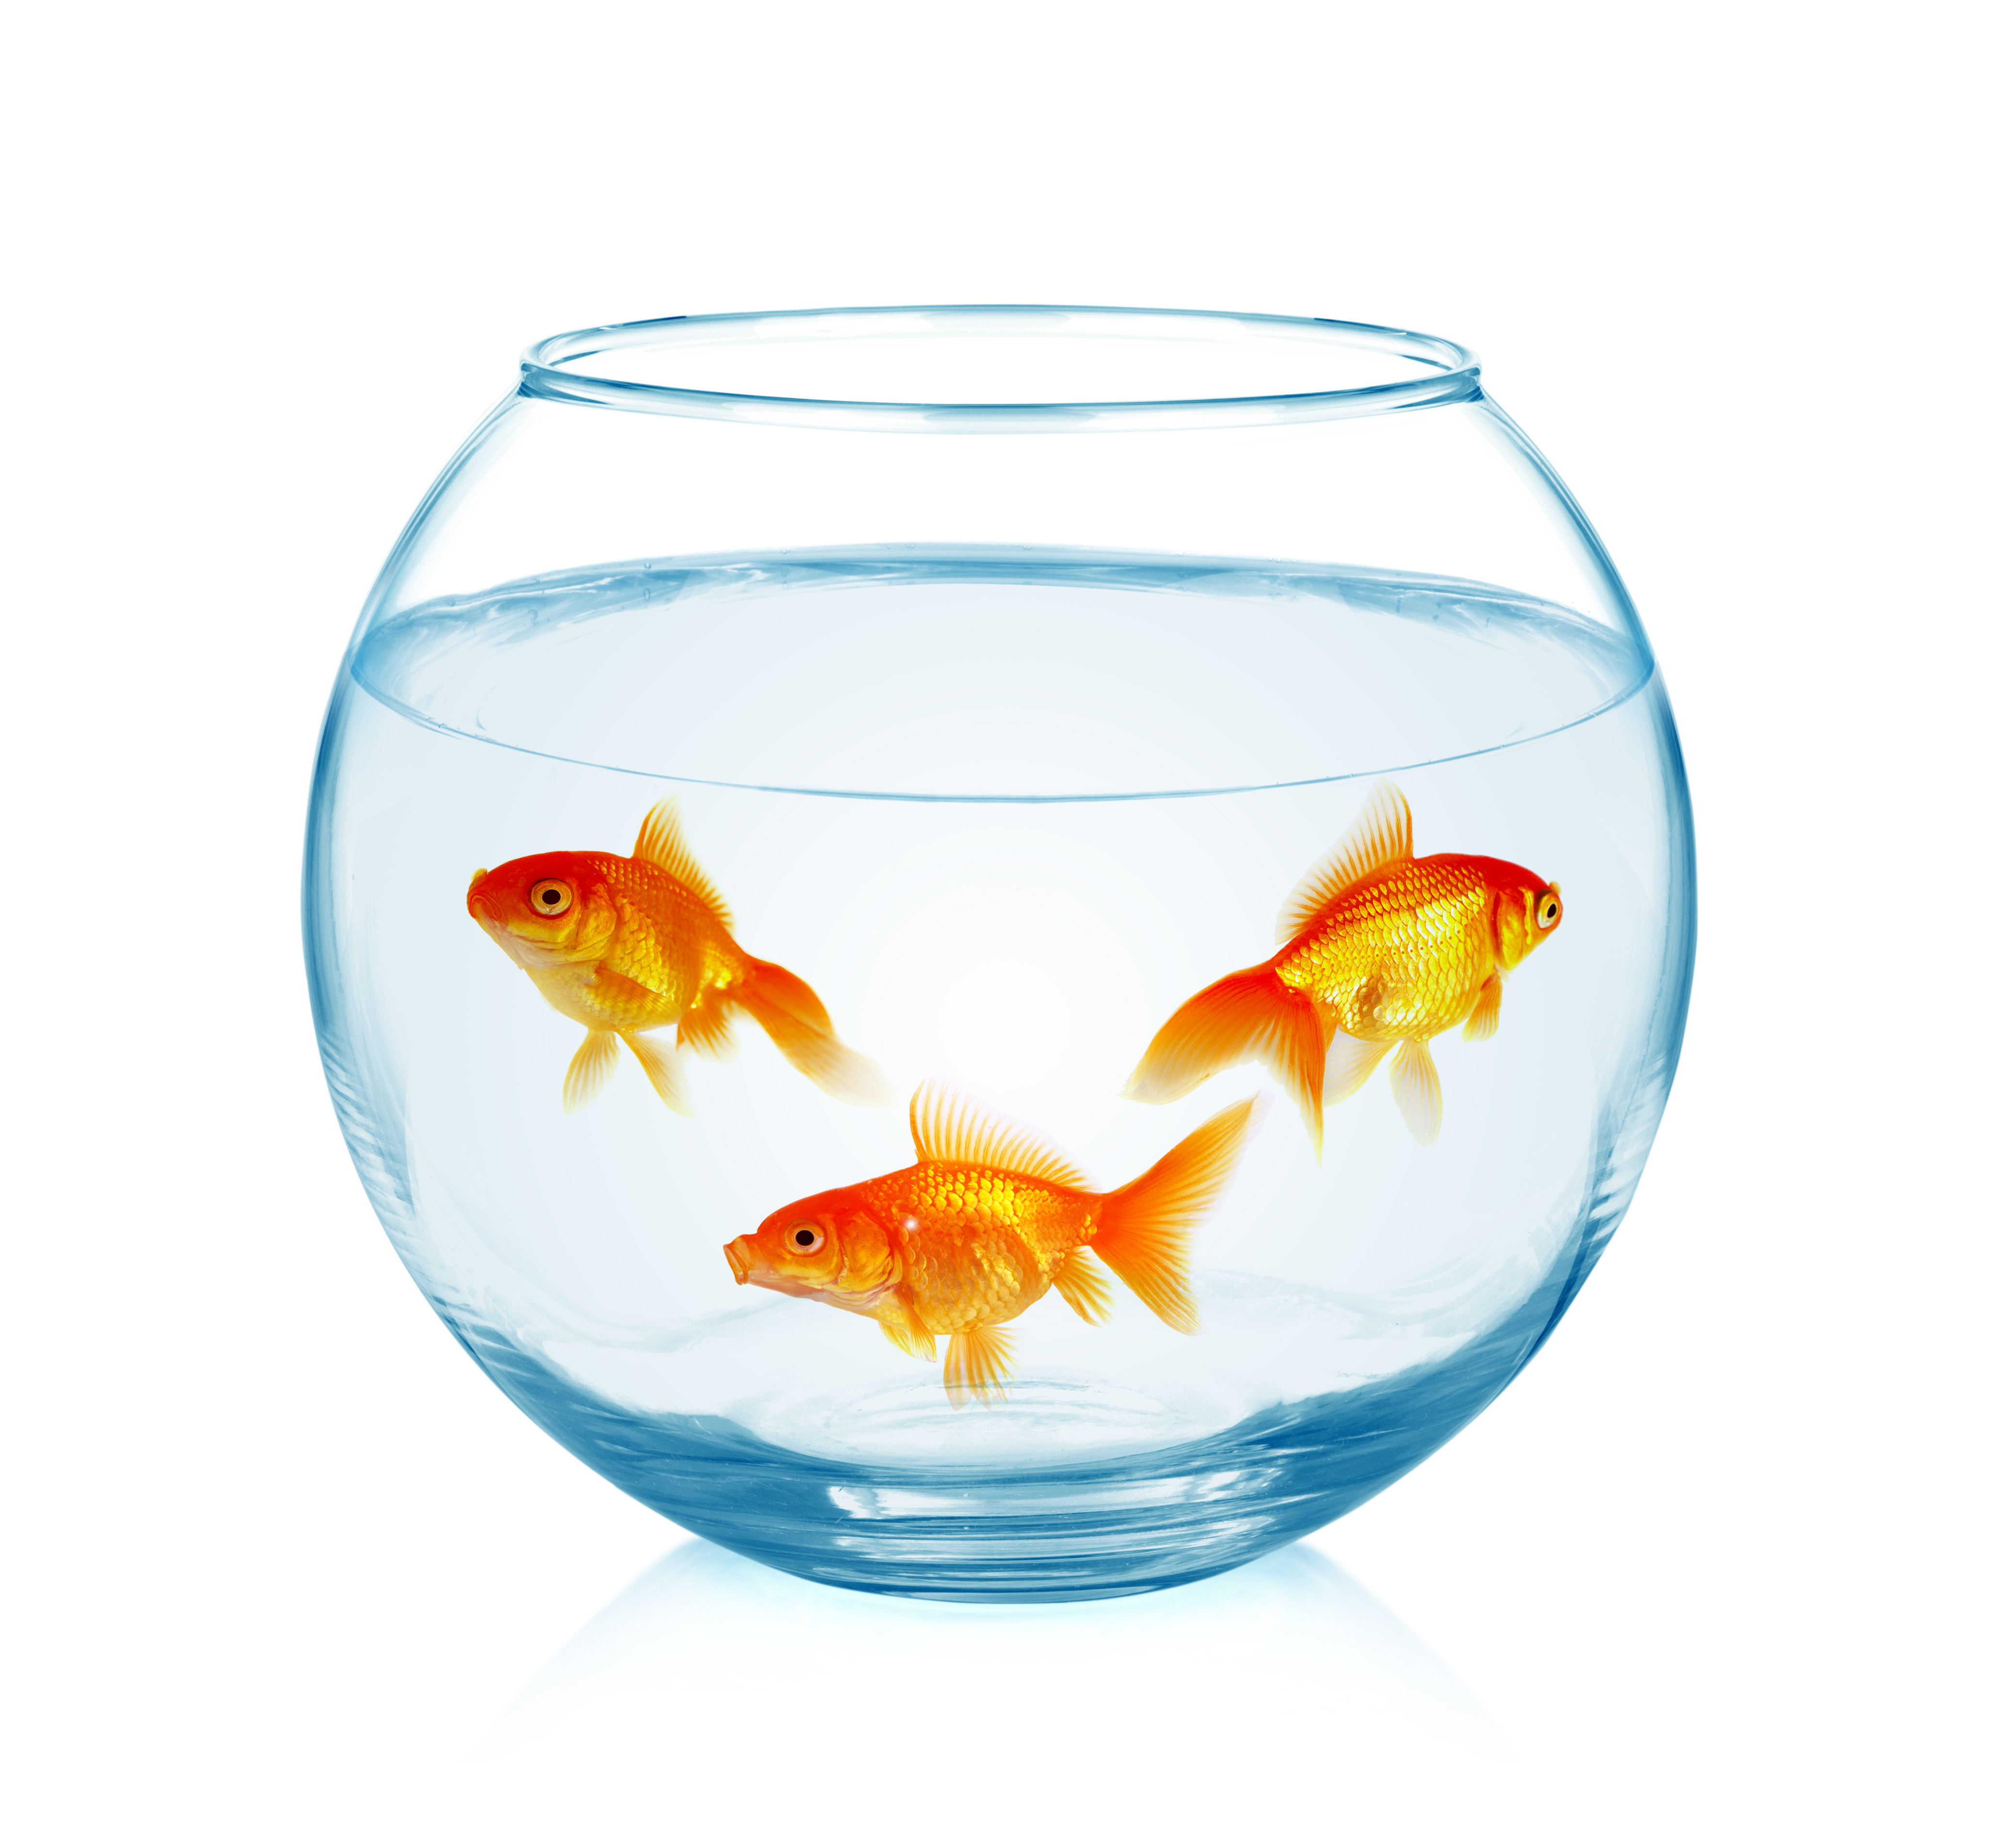 Weekly Training – Fishbowl Discount Tactic